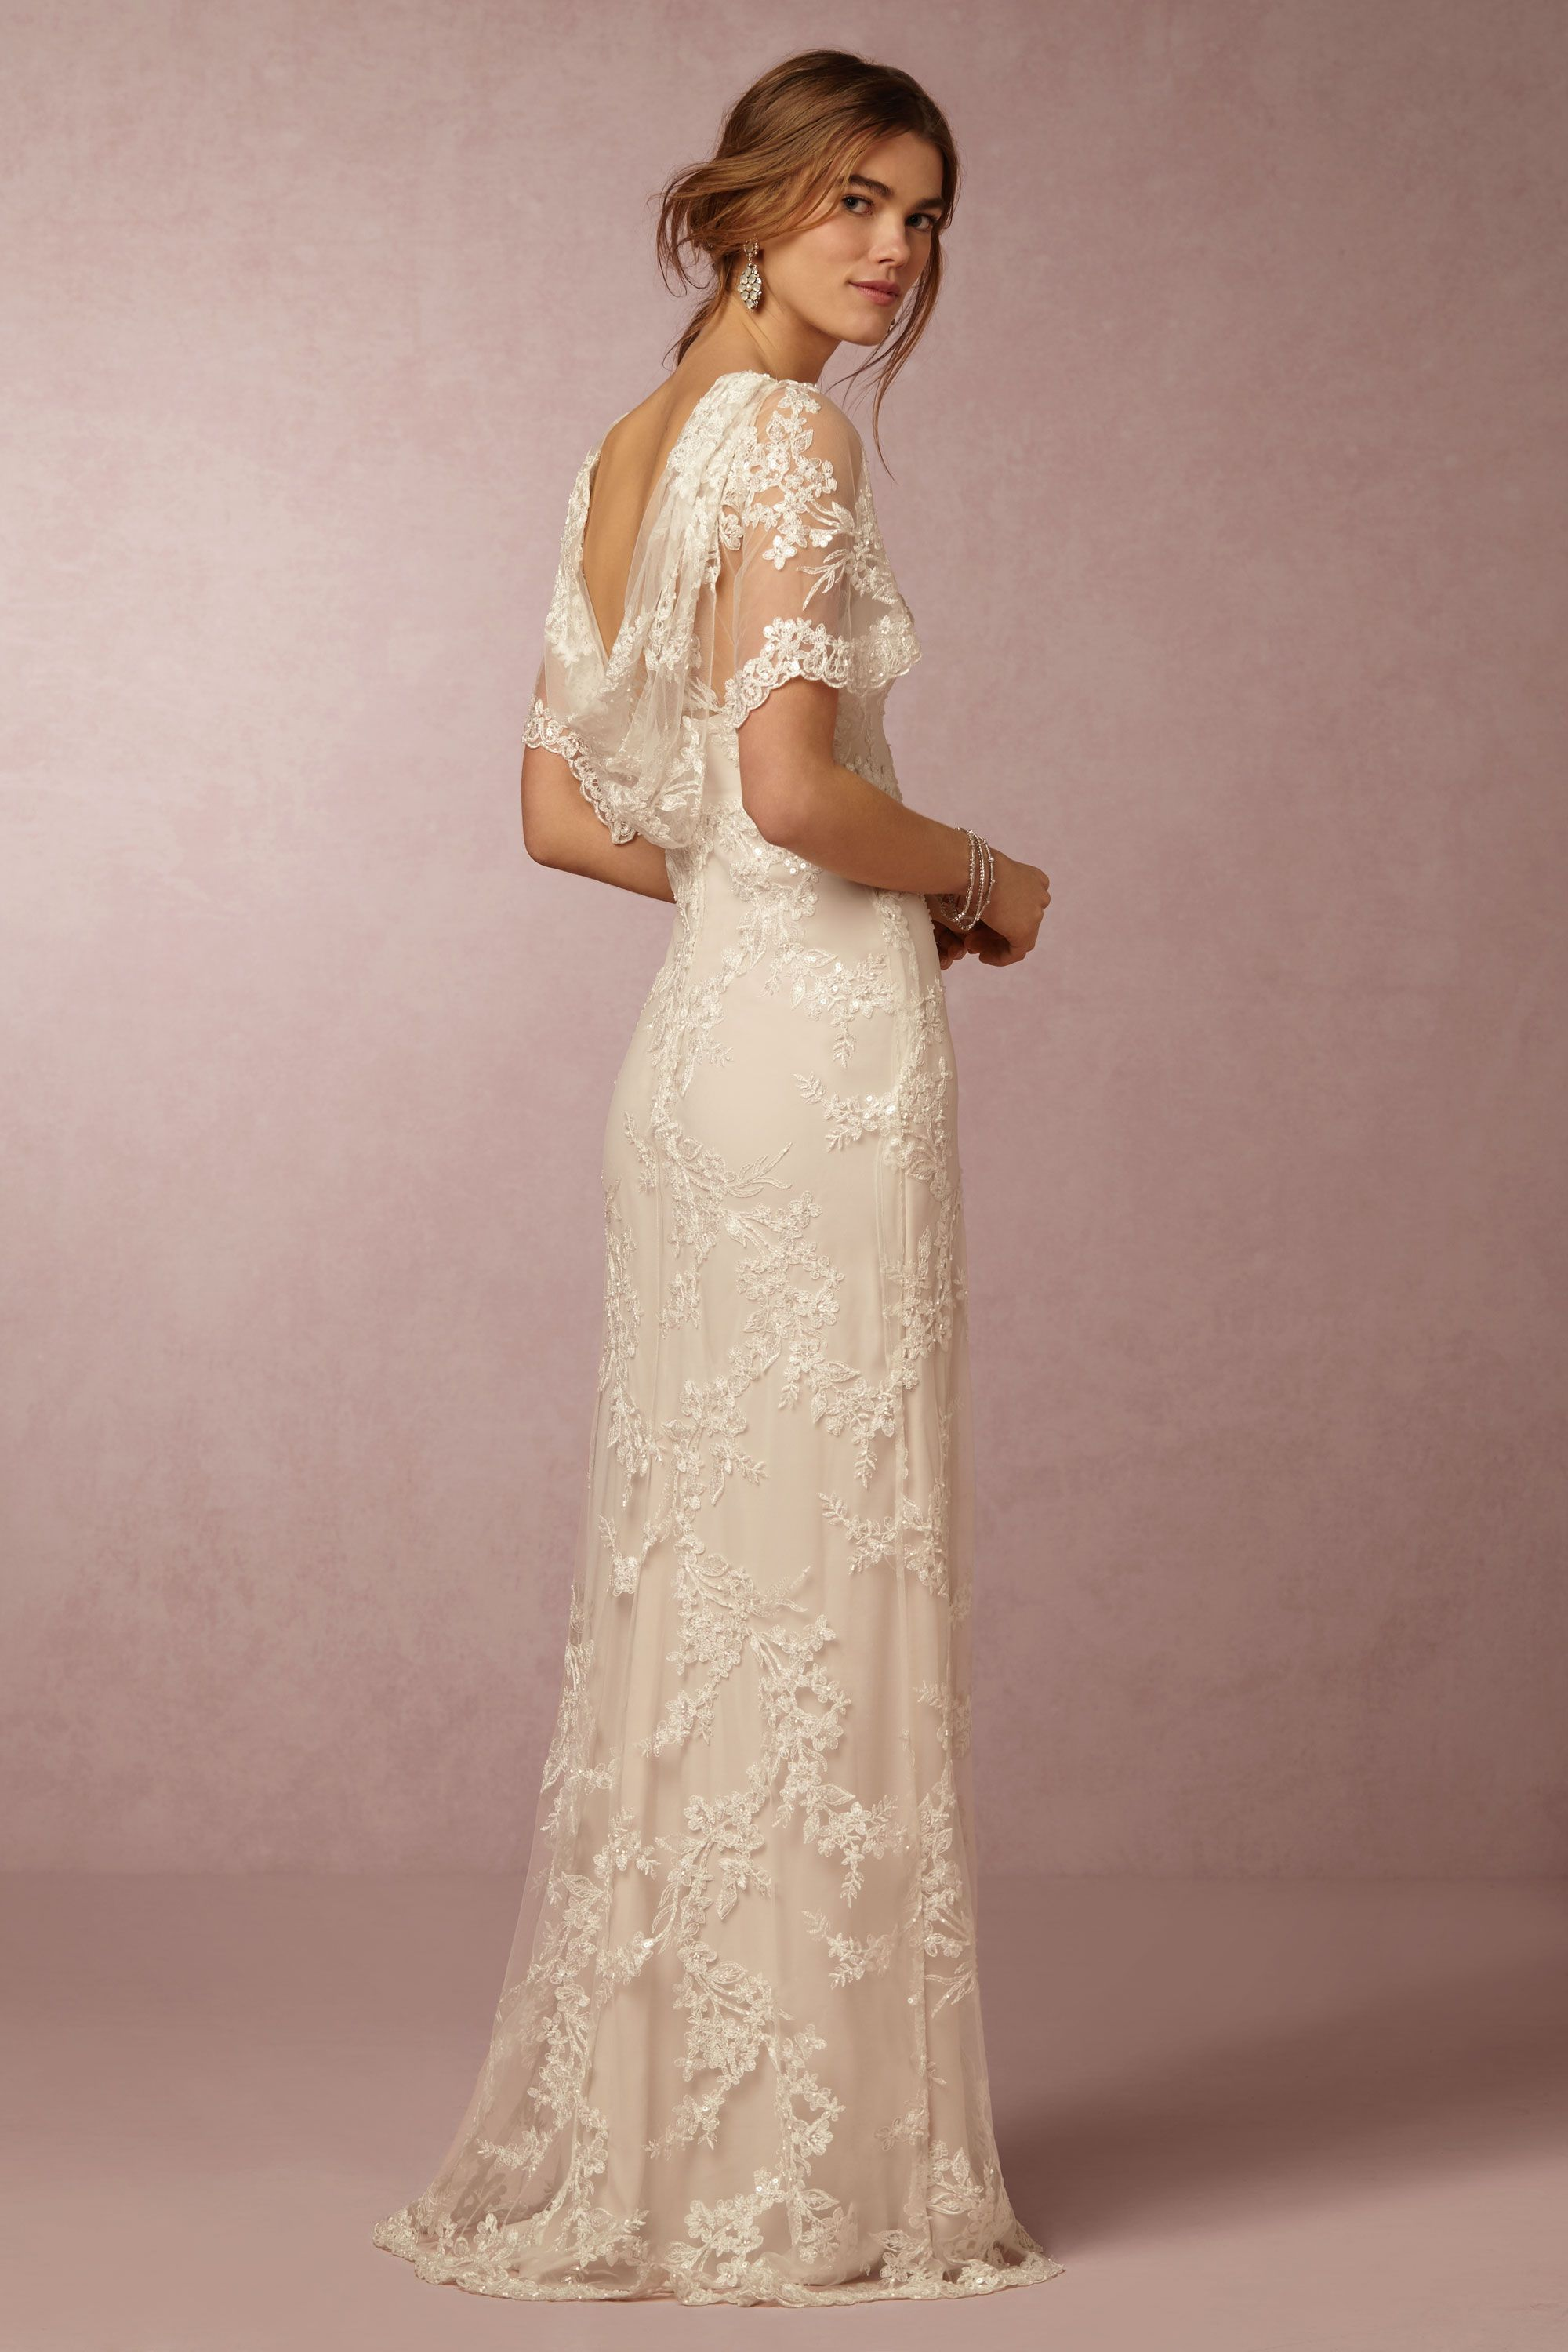 Estella Gown from @BHLDN sold at Anthropologie | unique wedding ...